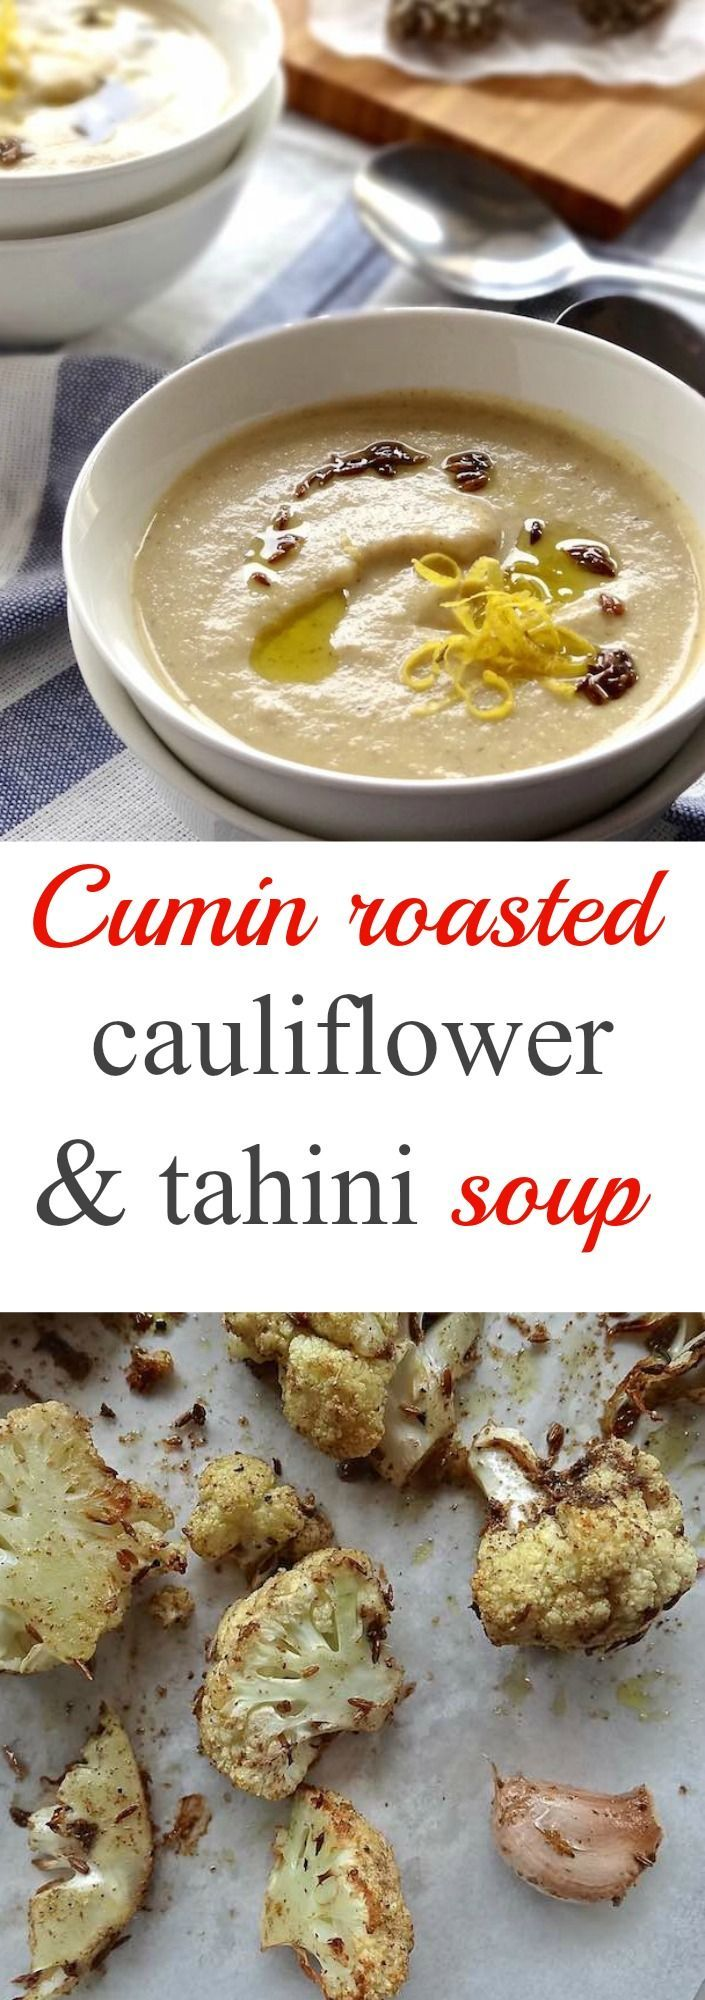 You won't believe how good this soup is! Velvety smooth cumin roasted cauliflower & tahini soup